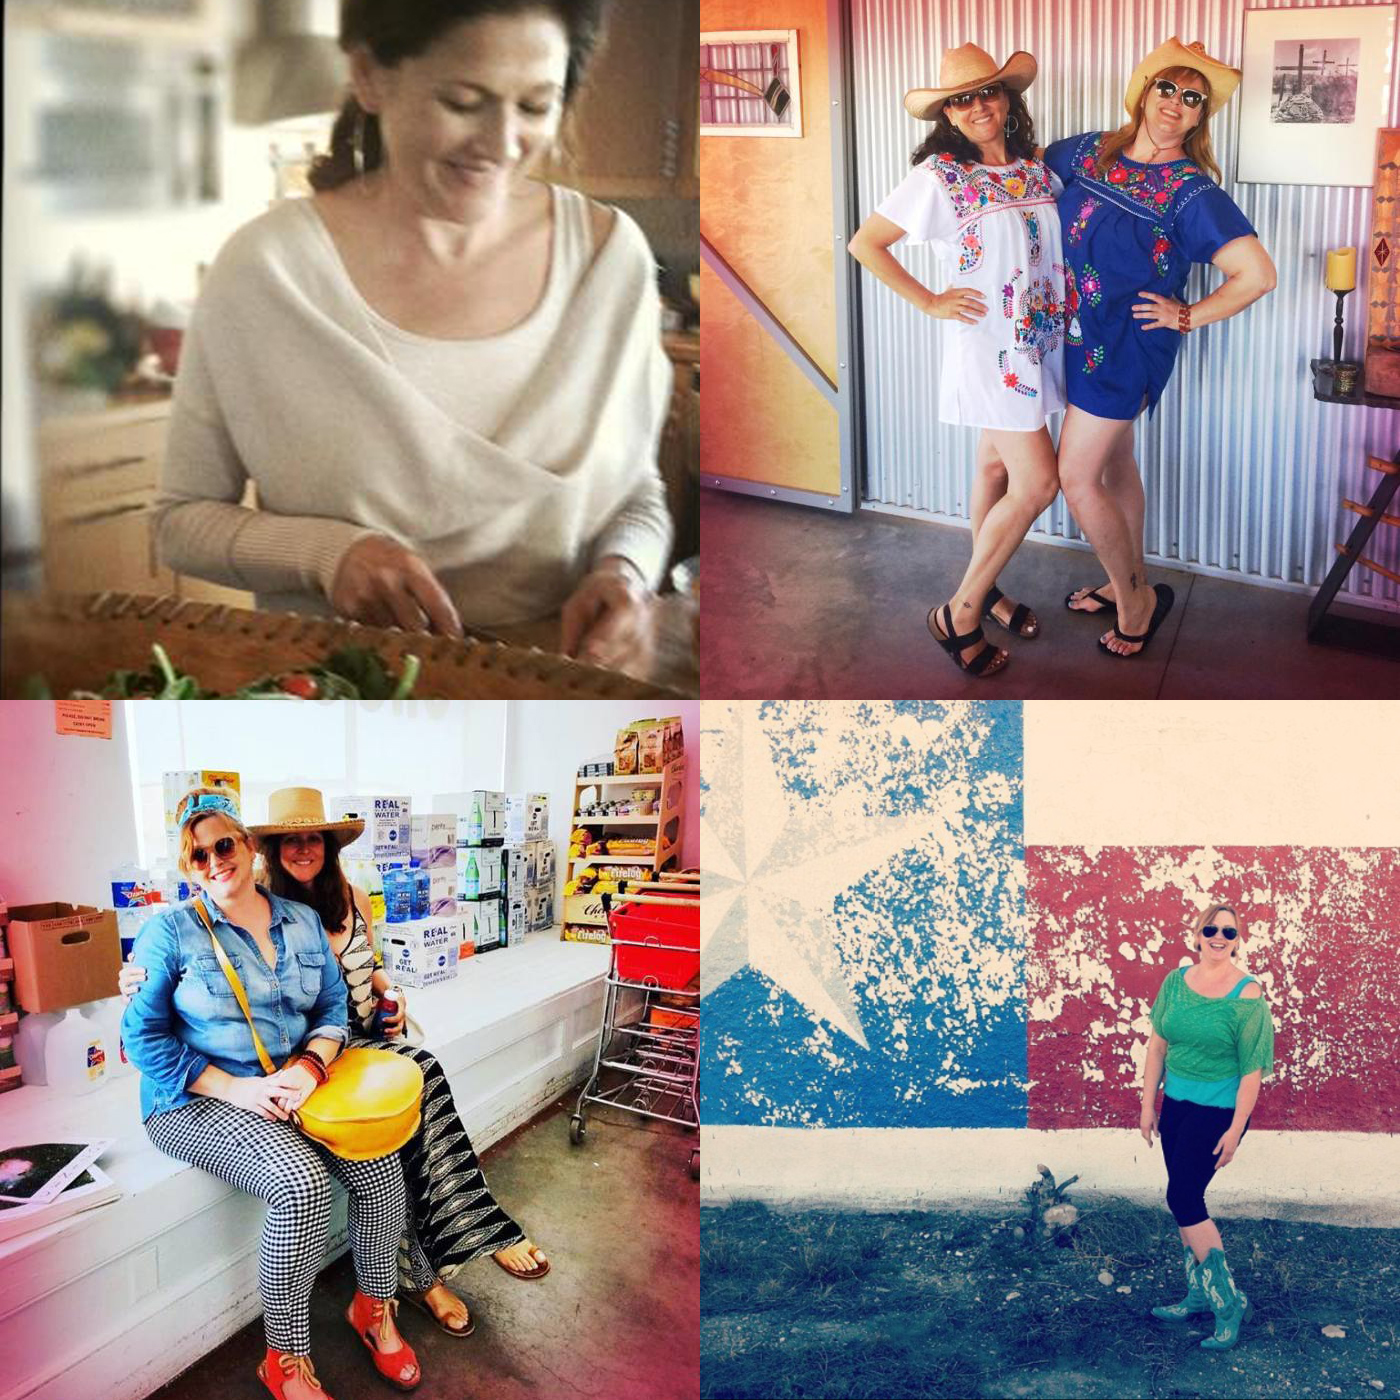 From Top Left (clockwise): Wilma cooking her amazing food, Wilma & Sarah twinning for  Balmorhea , Sarah in West Texas Yoga Chic, Sarah & Wilma out on the town in  Marfa